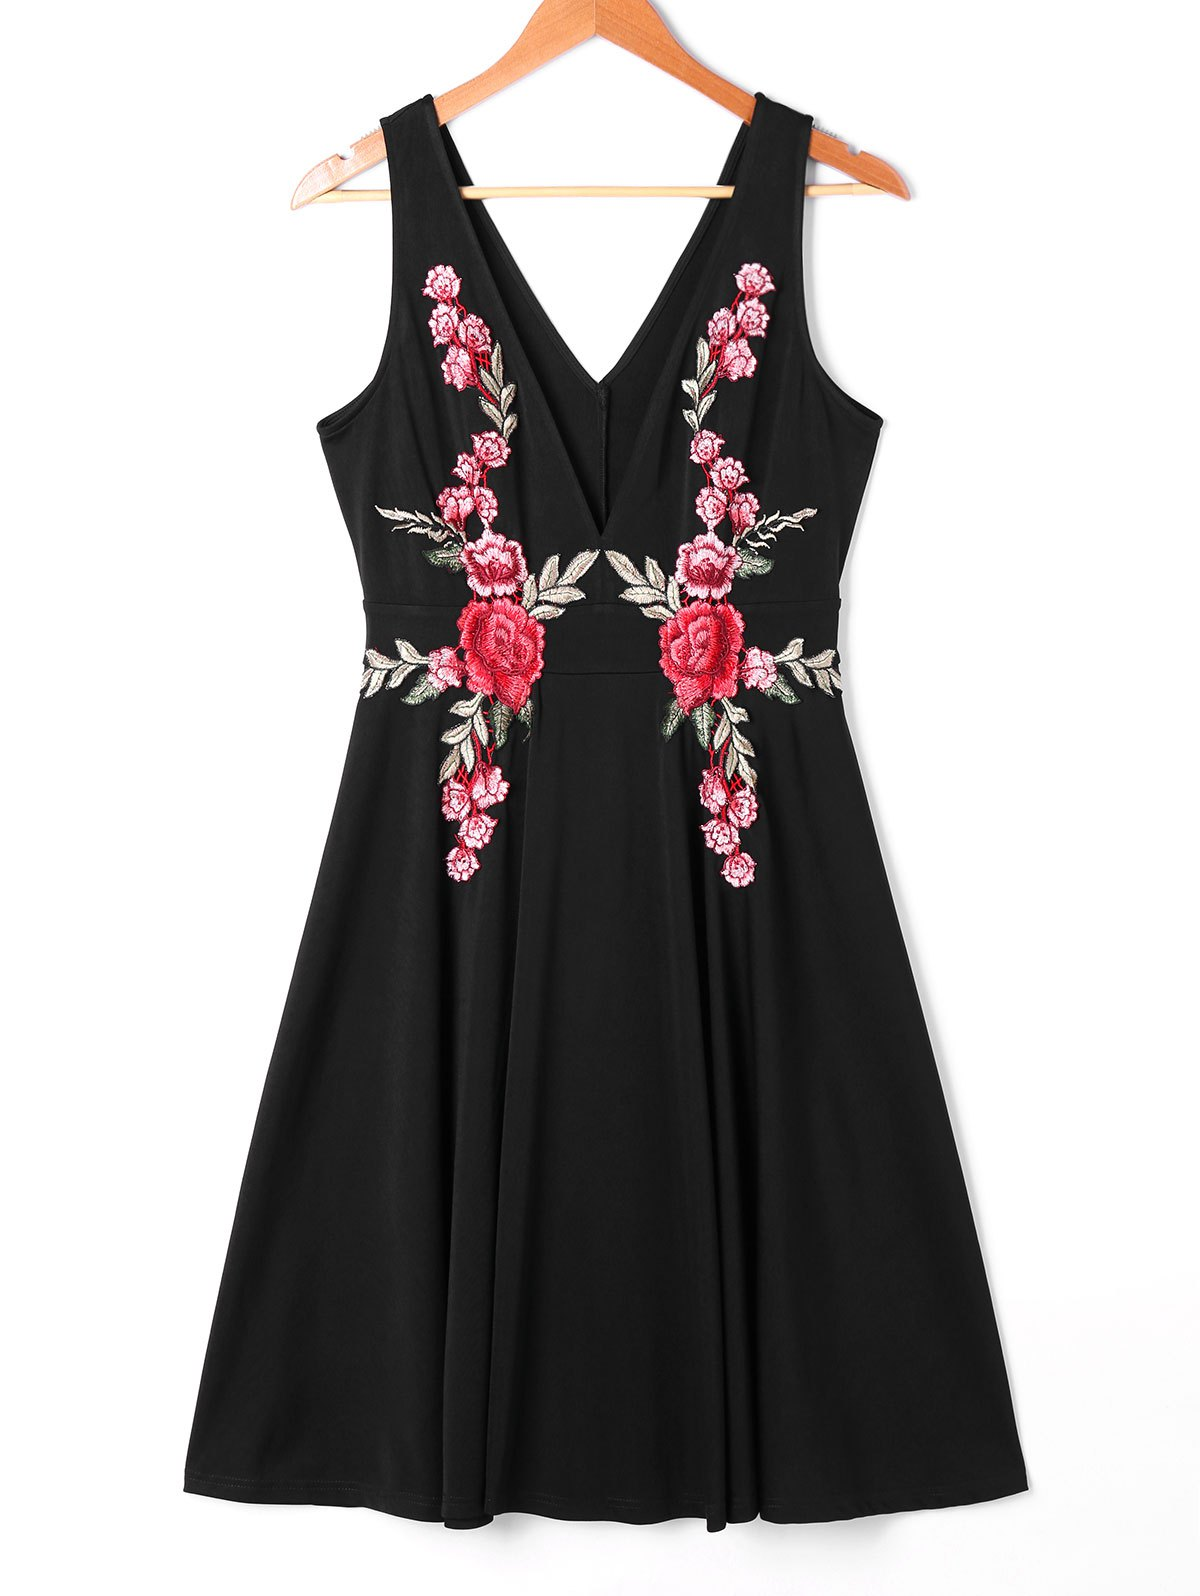 Hot Embroidered Plunging Neckline Swing Dress